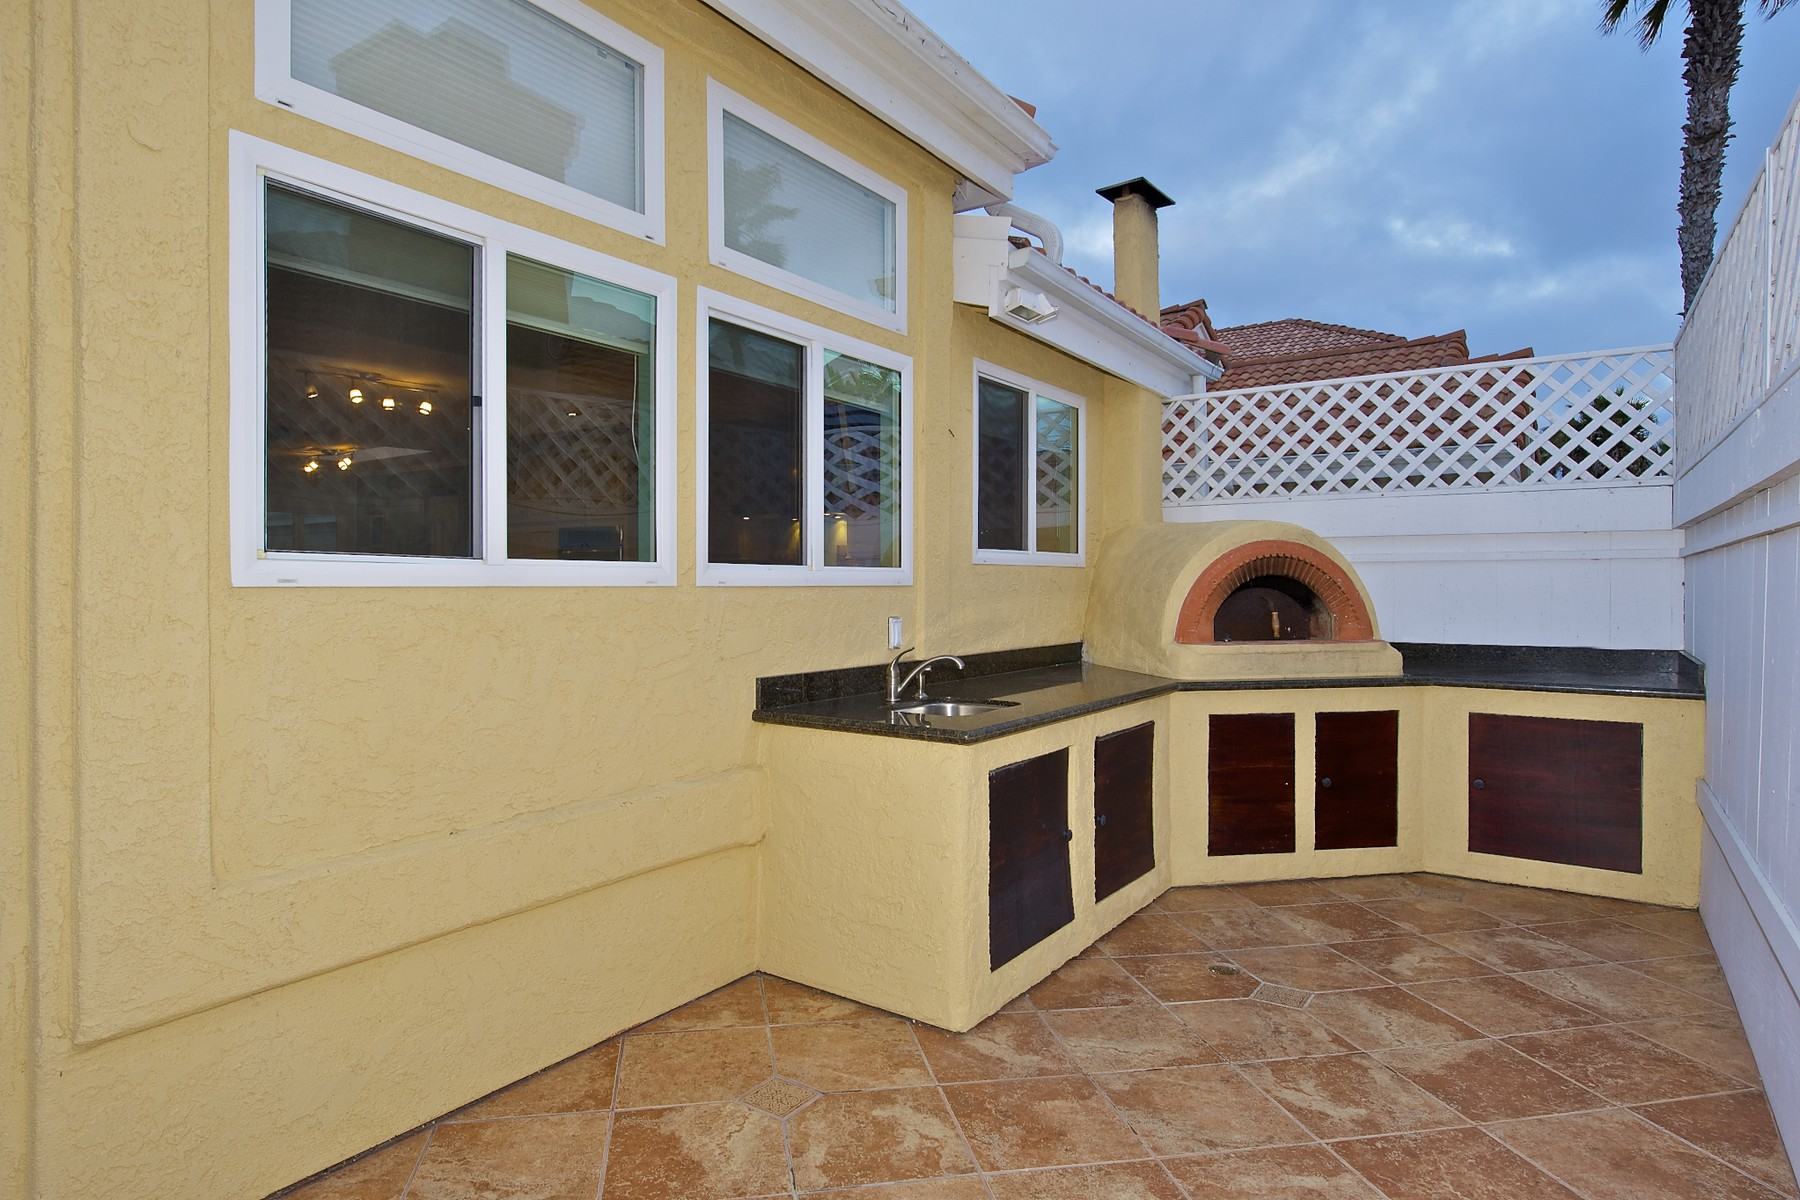 Additional photo for property listing at 52 Mardi Gras Road  Coronado, Калифорния 92118 Соединенные Штаты